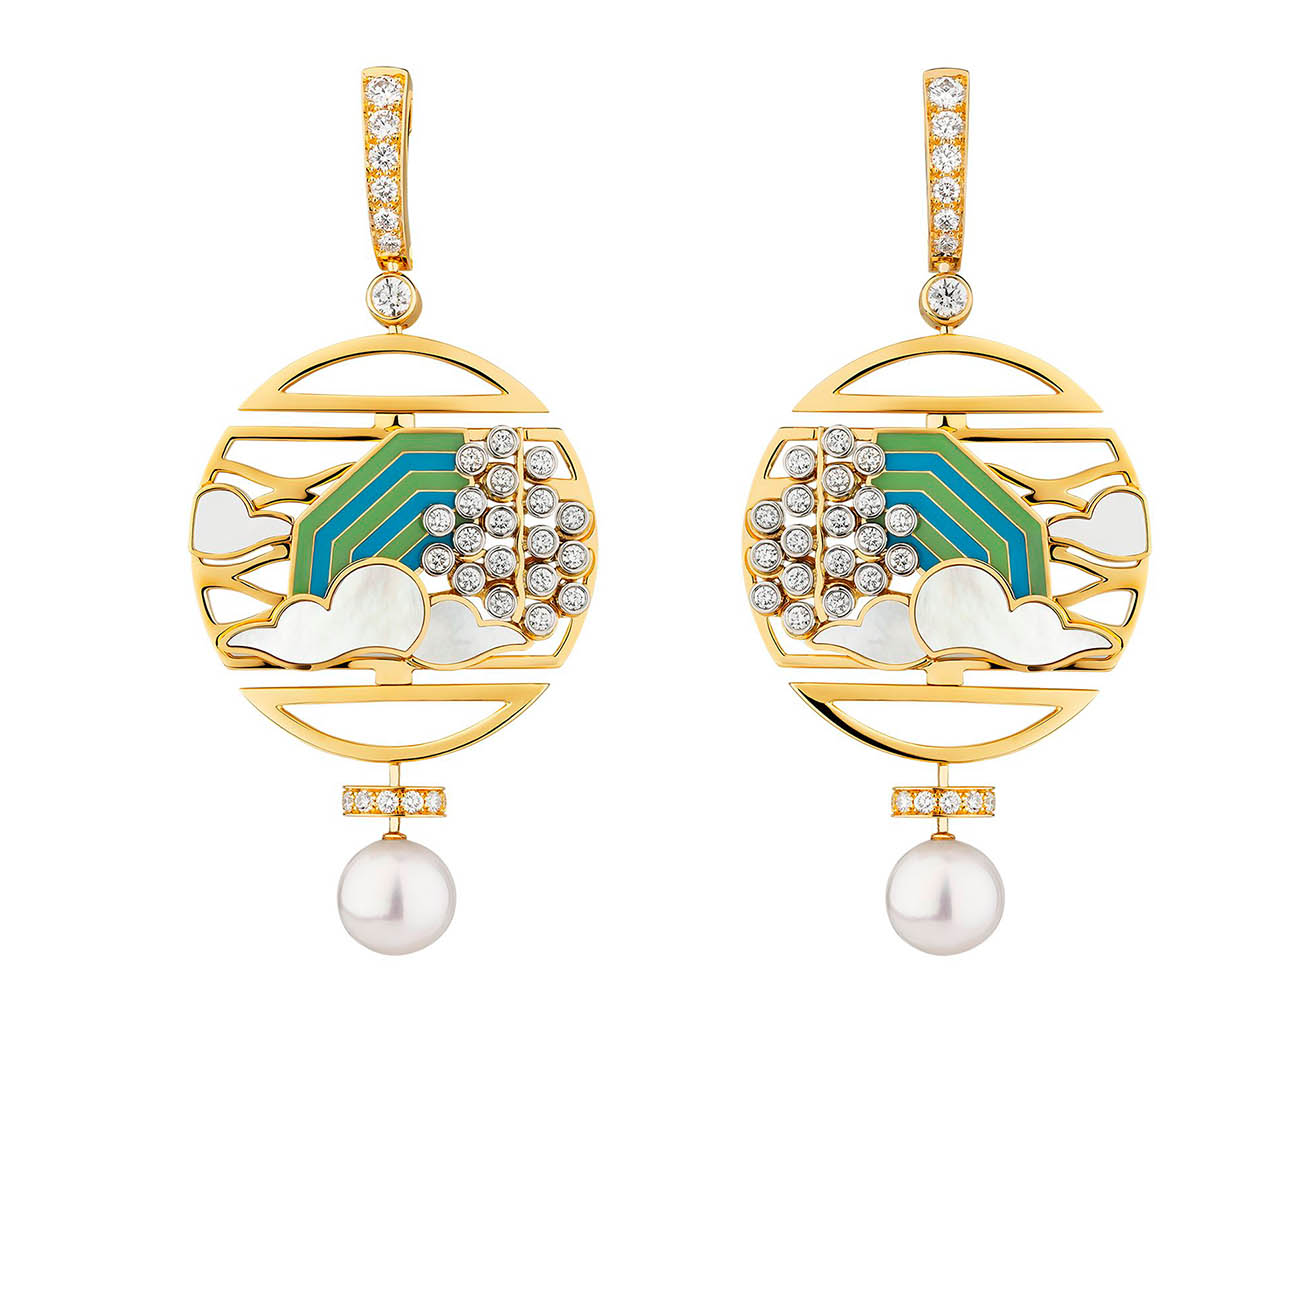 CHANEL COROMANDEL Vibration Minérale Earrings